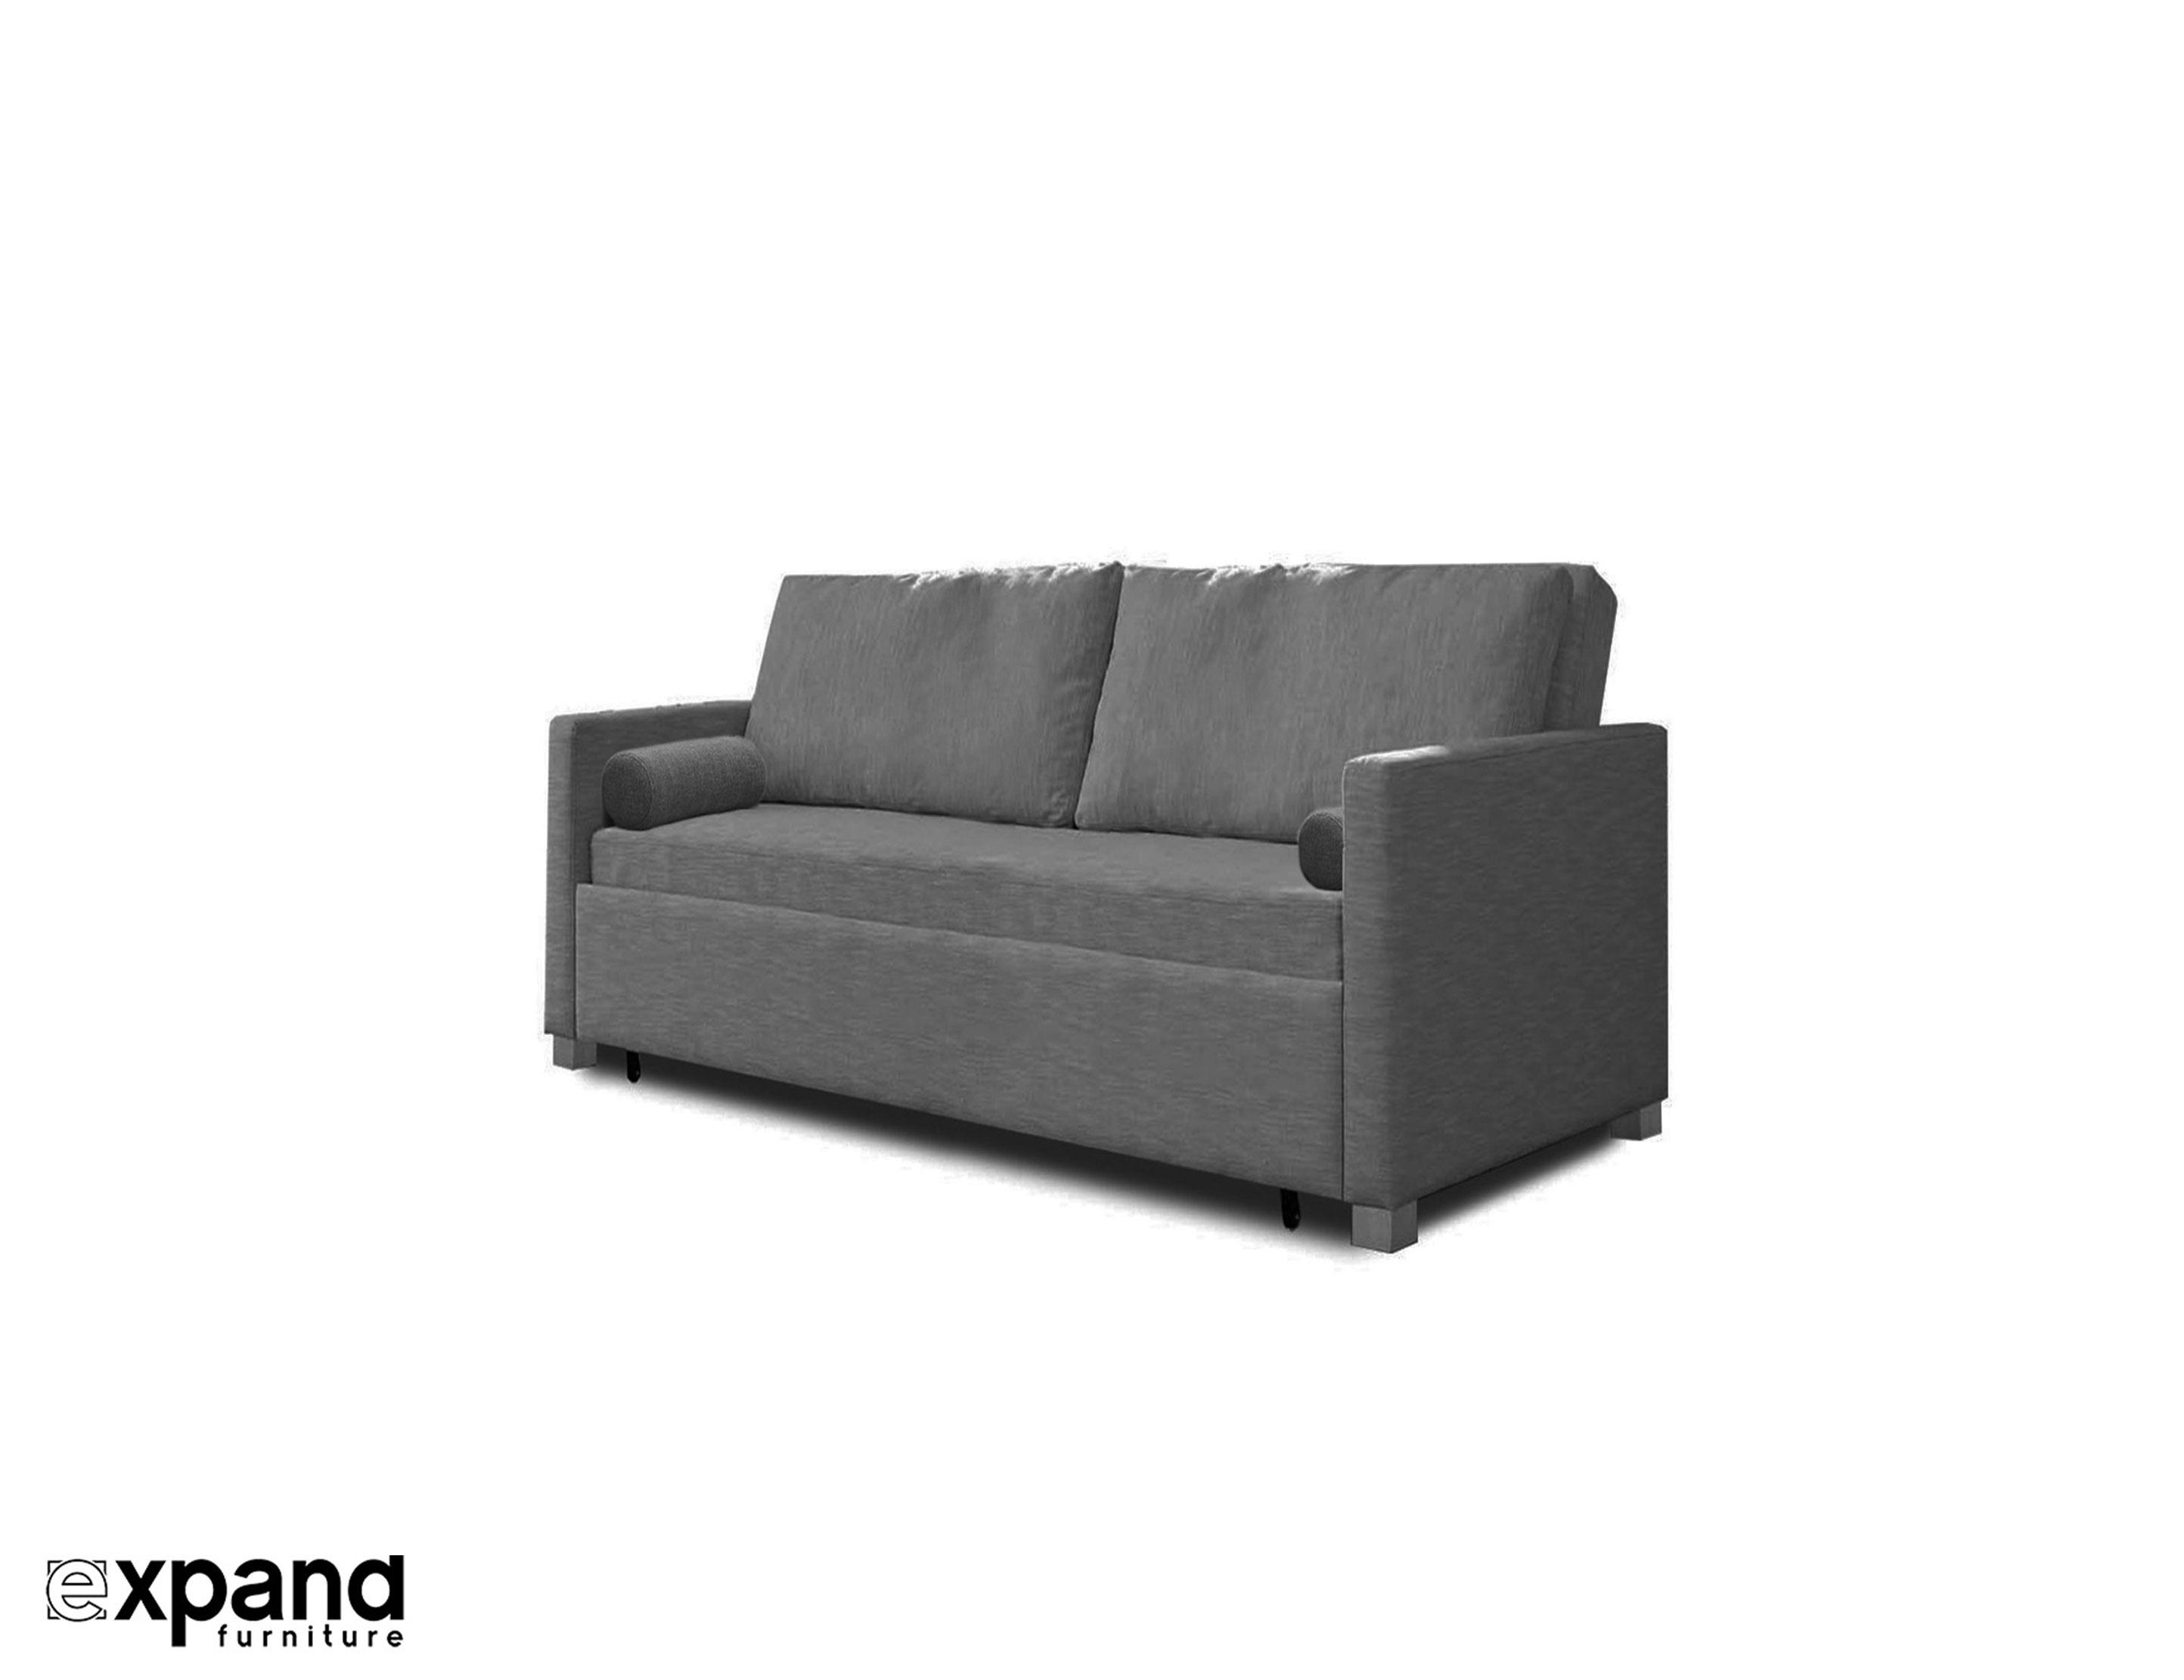 Harmony – Queen Size Memory Foam Sofa Bed | Expand Furniture Pertaining To Sofa Beds Queen (Image 7 of 21)